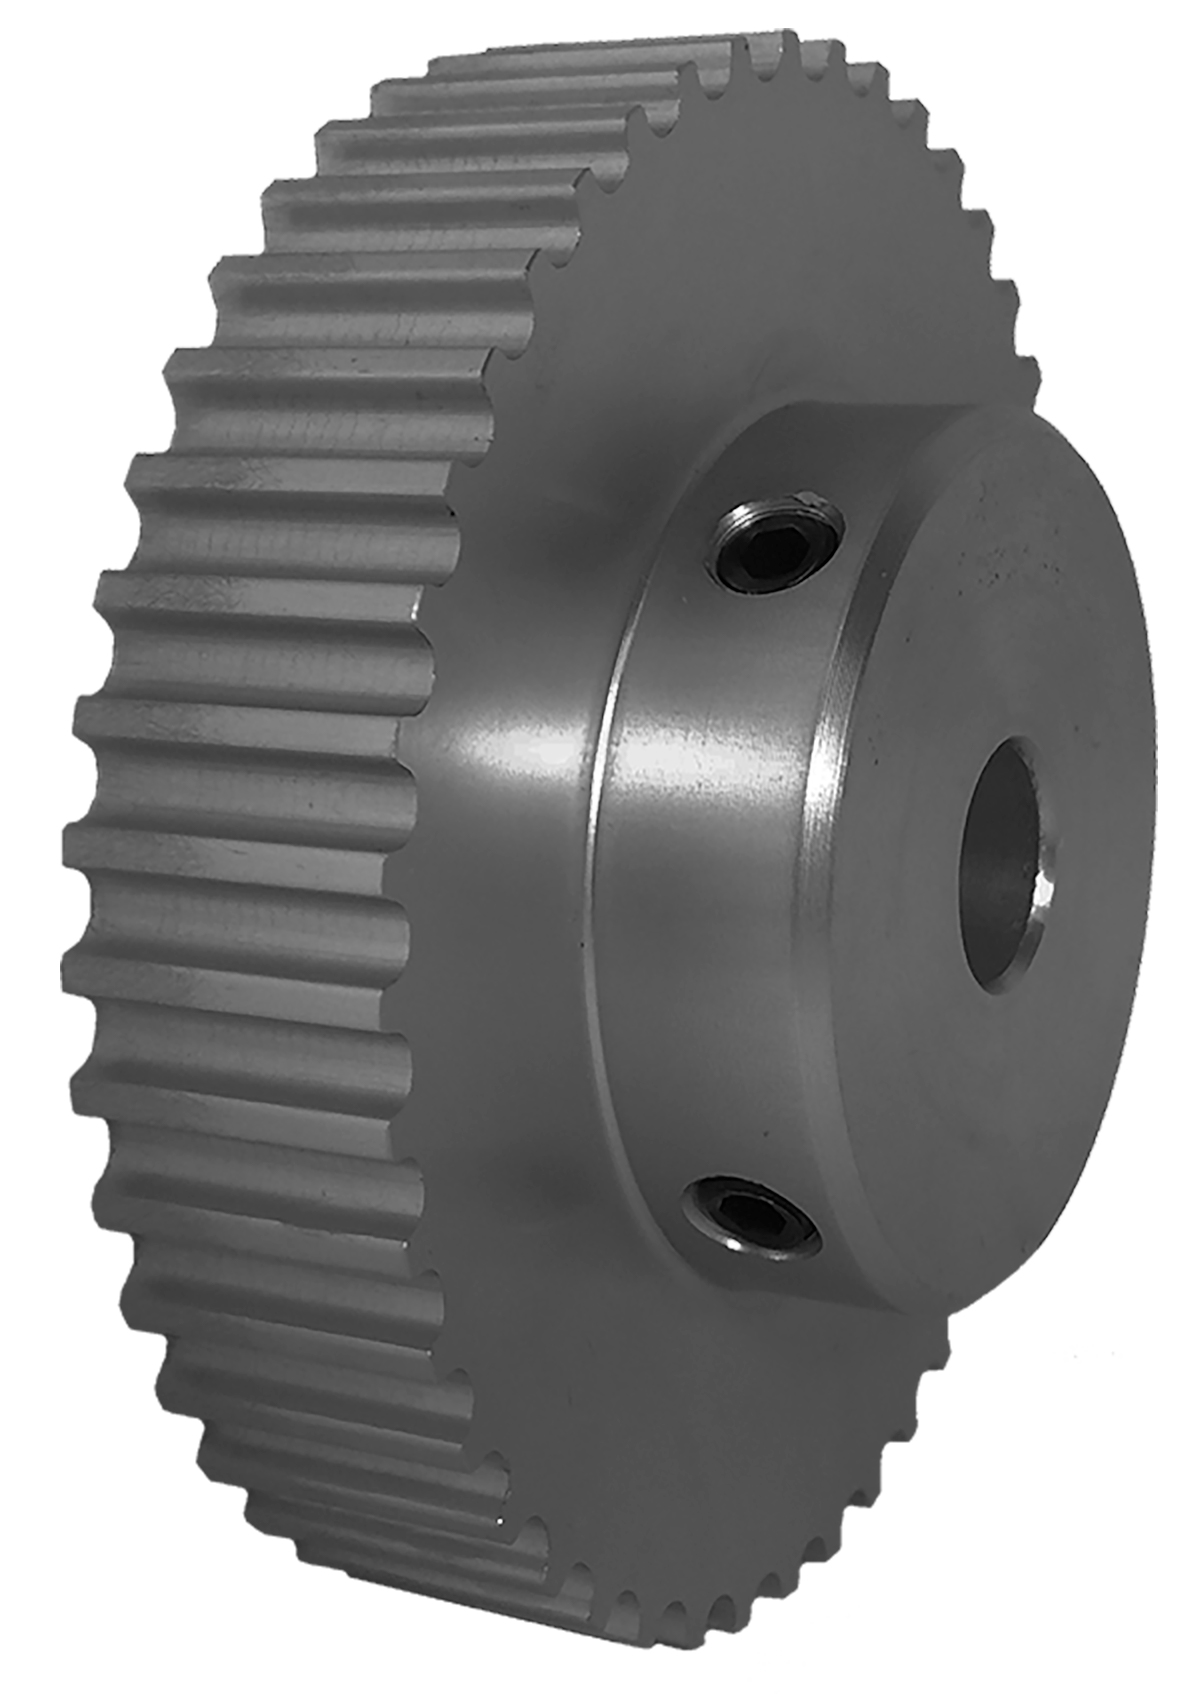 44-5M09M6A10 - Aluminum Powerhouse®HTD® Pulleys